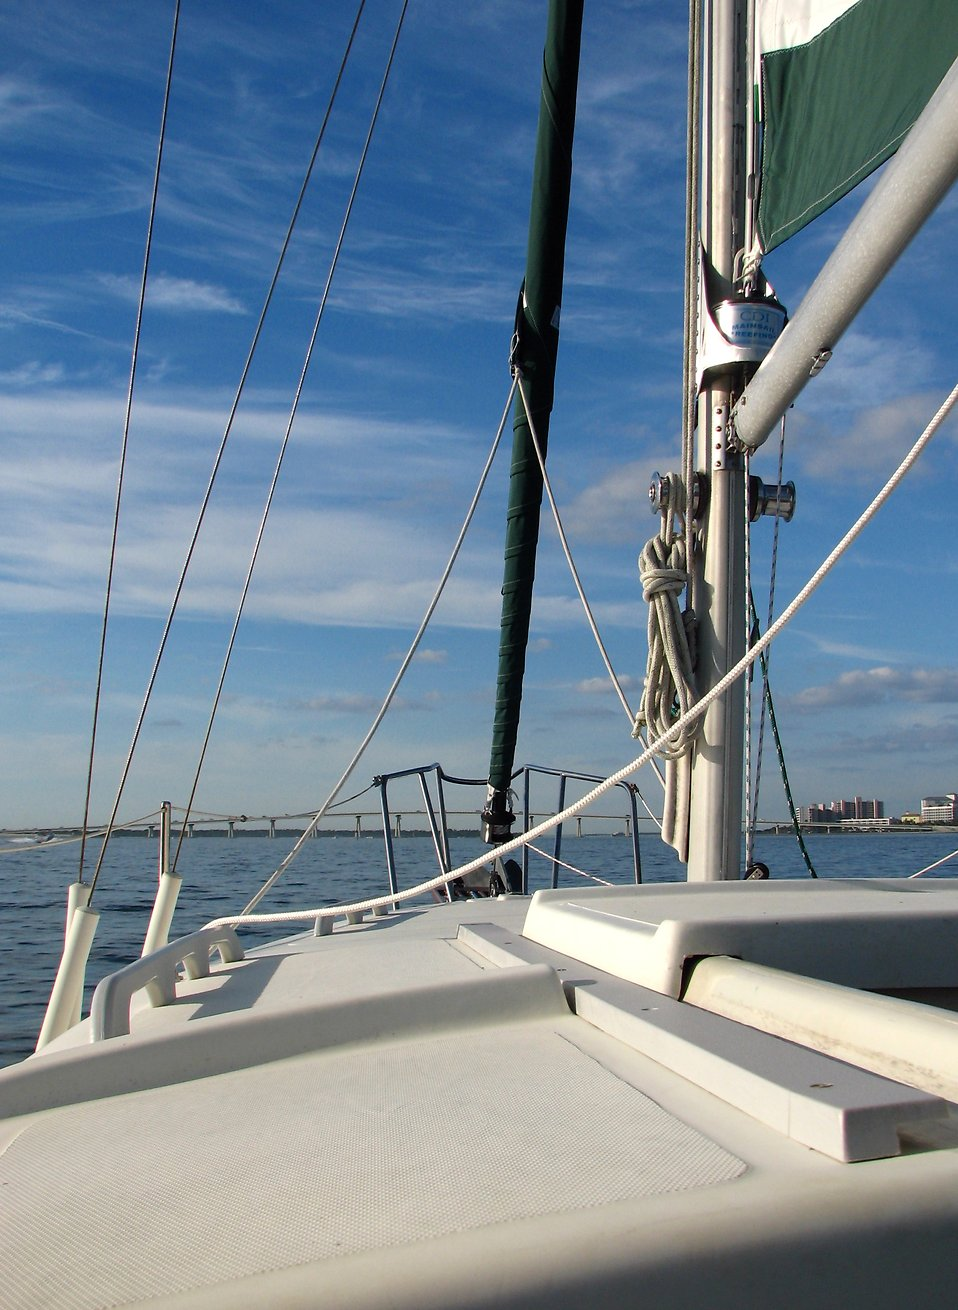 View of the sea from the deck of a sailboat : Free Stock Photo